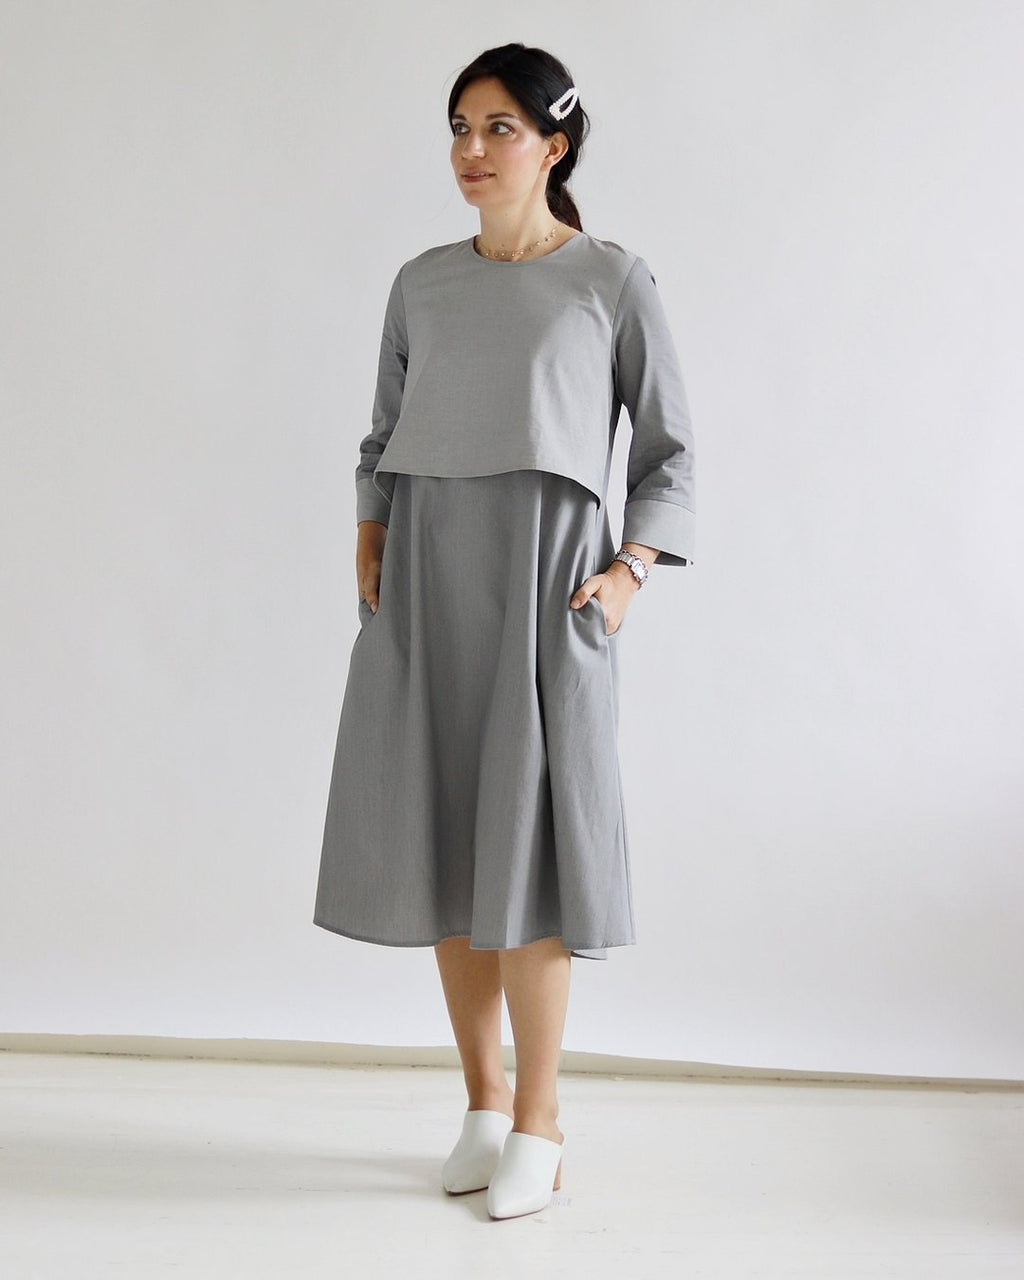 Aviva Bib Dress - Sarah Feldman Modest Clothing